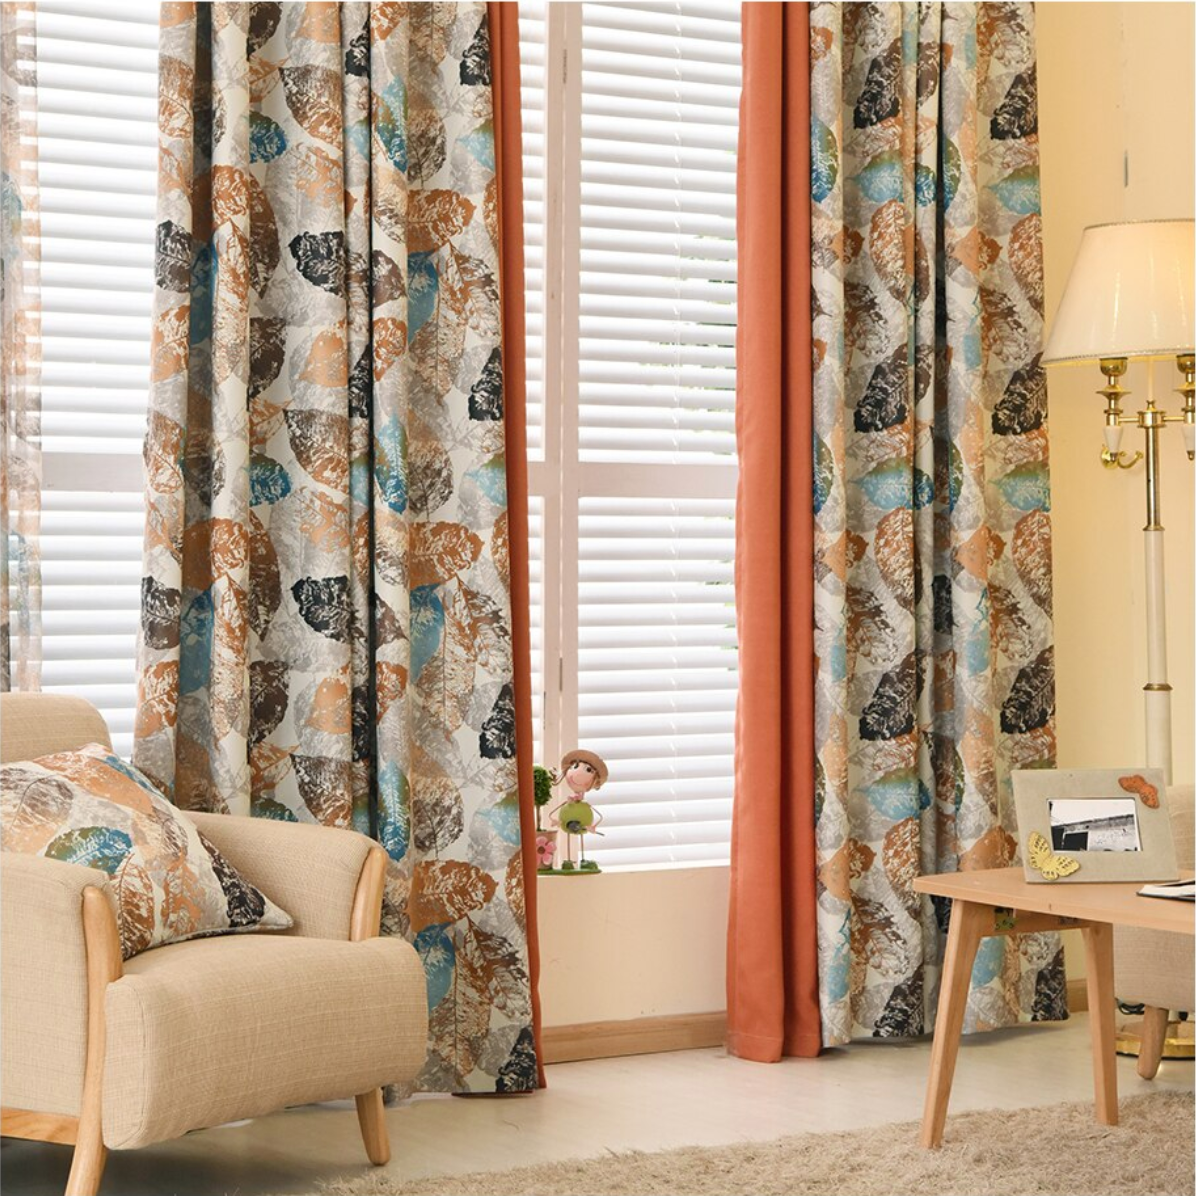 Jason Autumn Leaves Print Blackout Curtain - Curtains Online - Discover-curtains